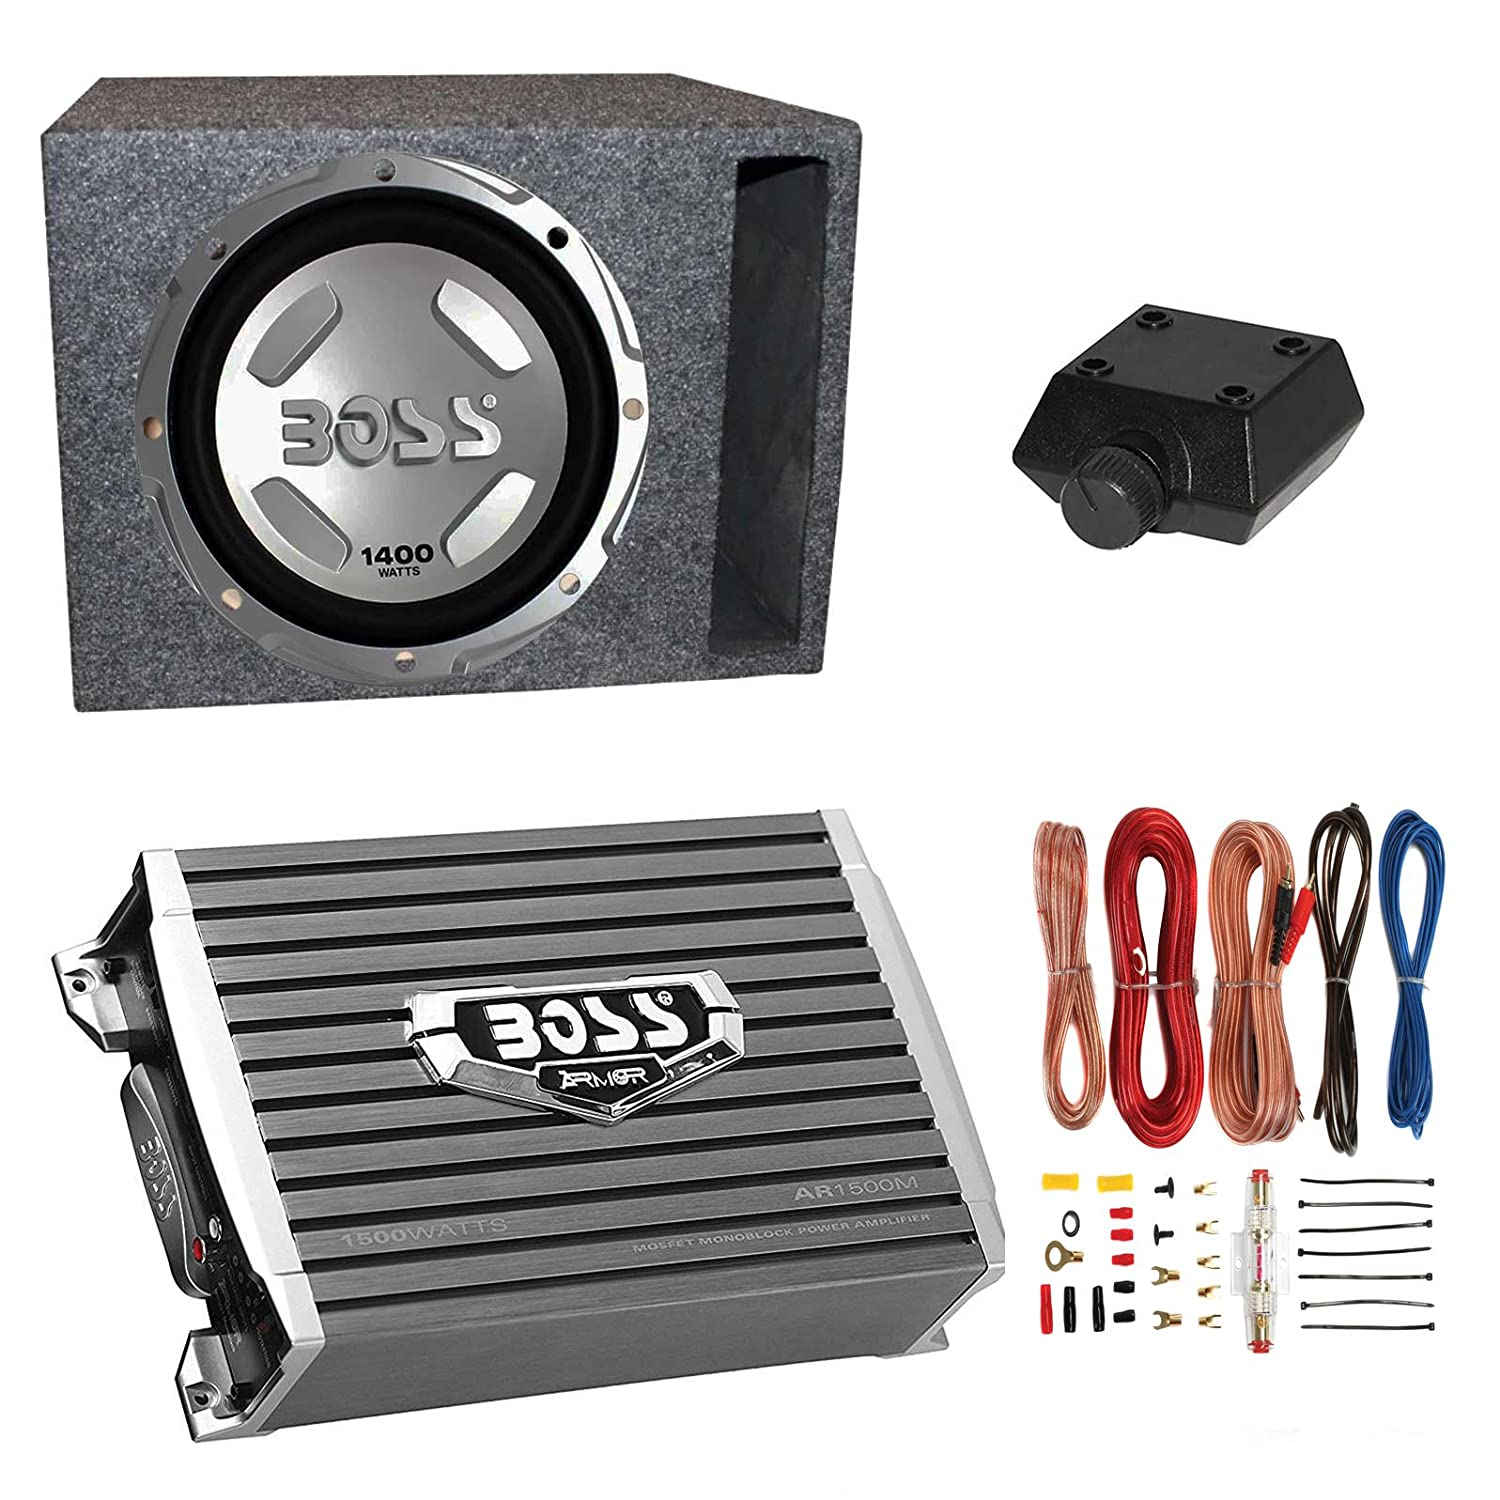 Boss Audio 1400w Subwoofer 1500w Amplifier Wiring Together With 1 Ohm Harness Remote Kit Q Power Enclosure Cell Phones Accessories